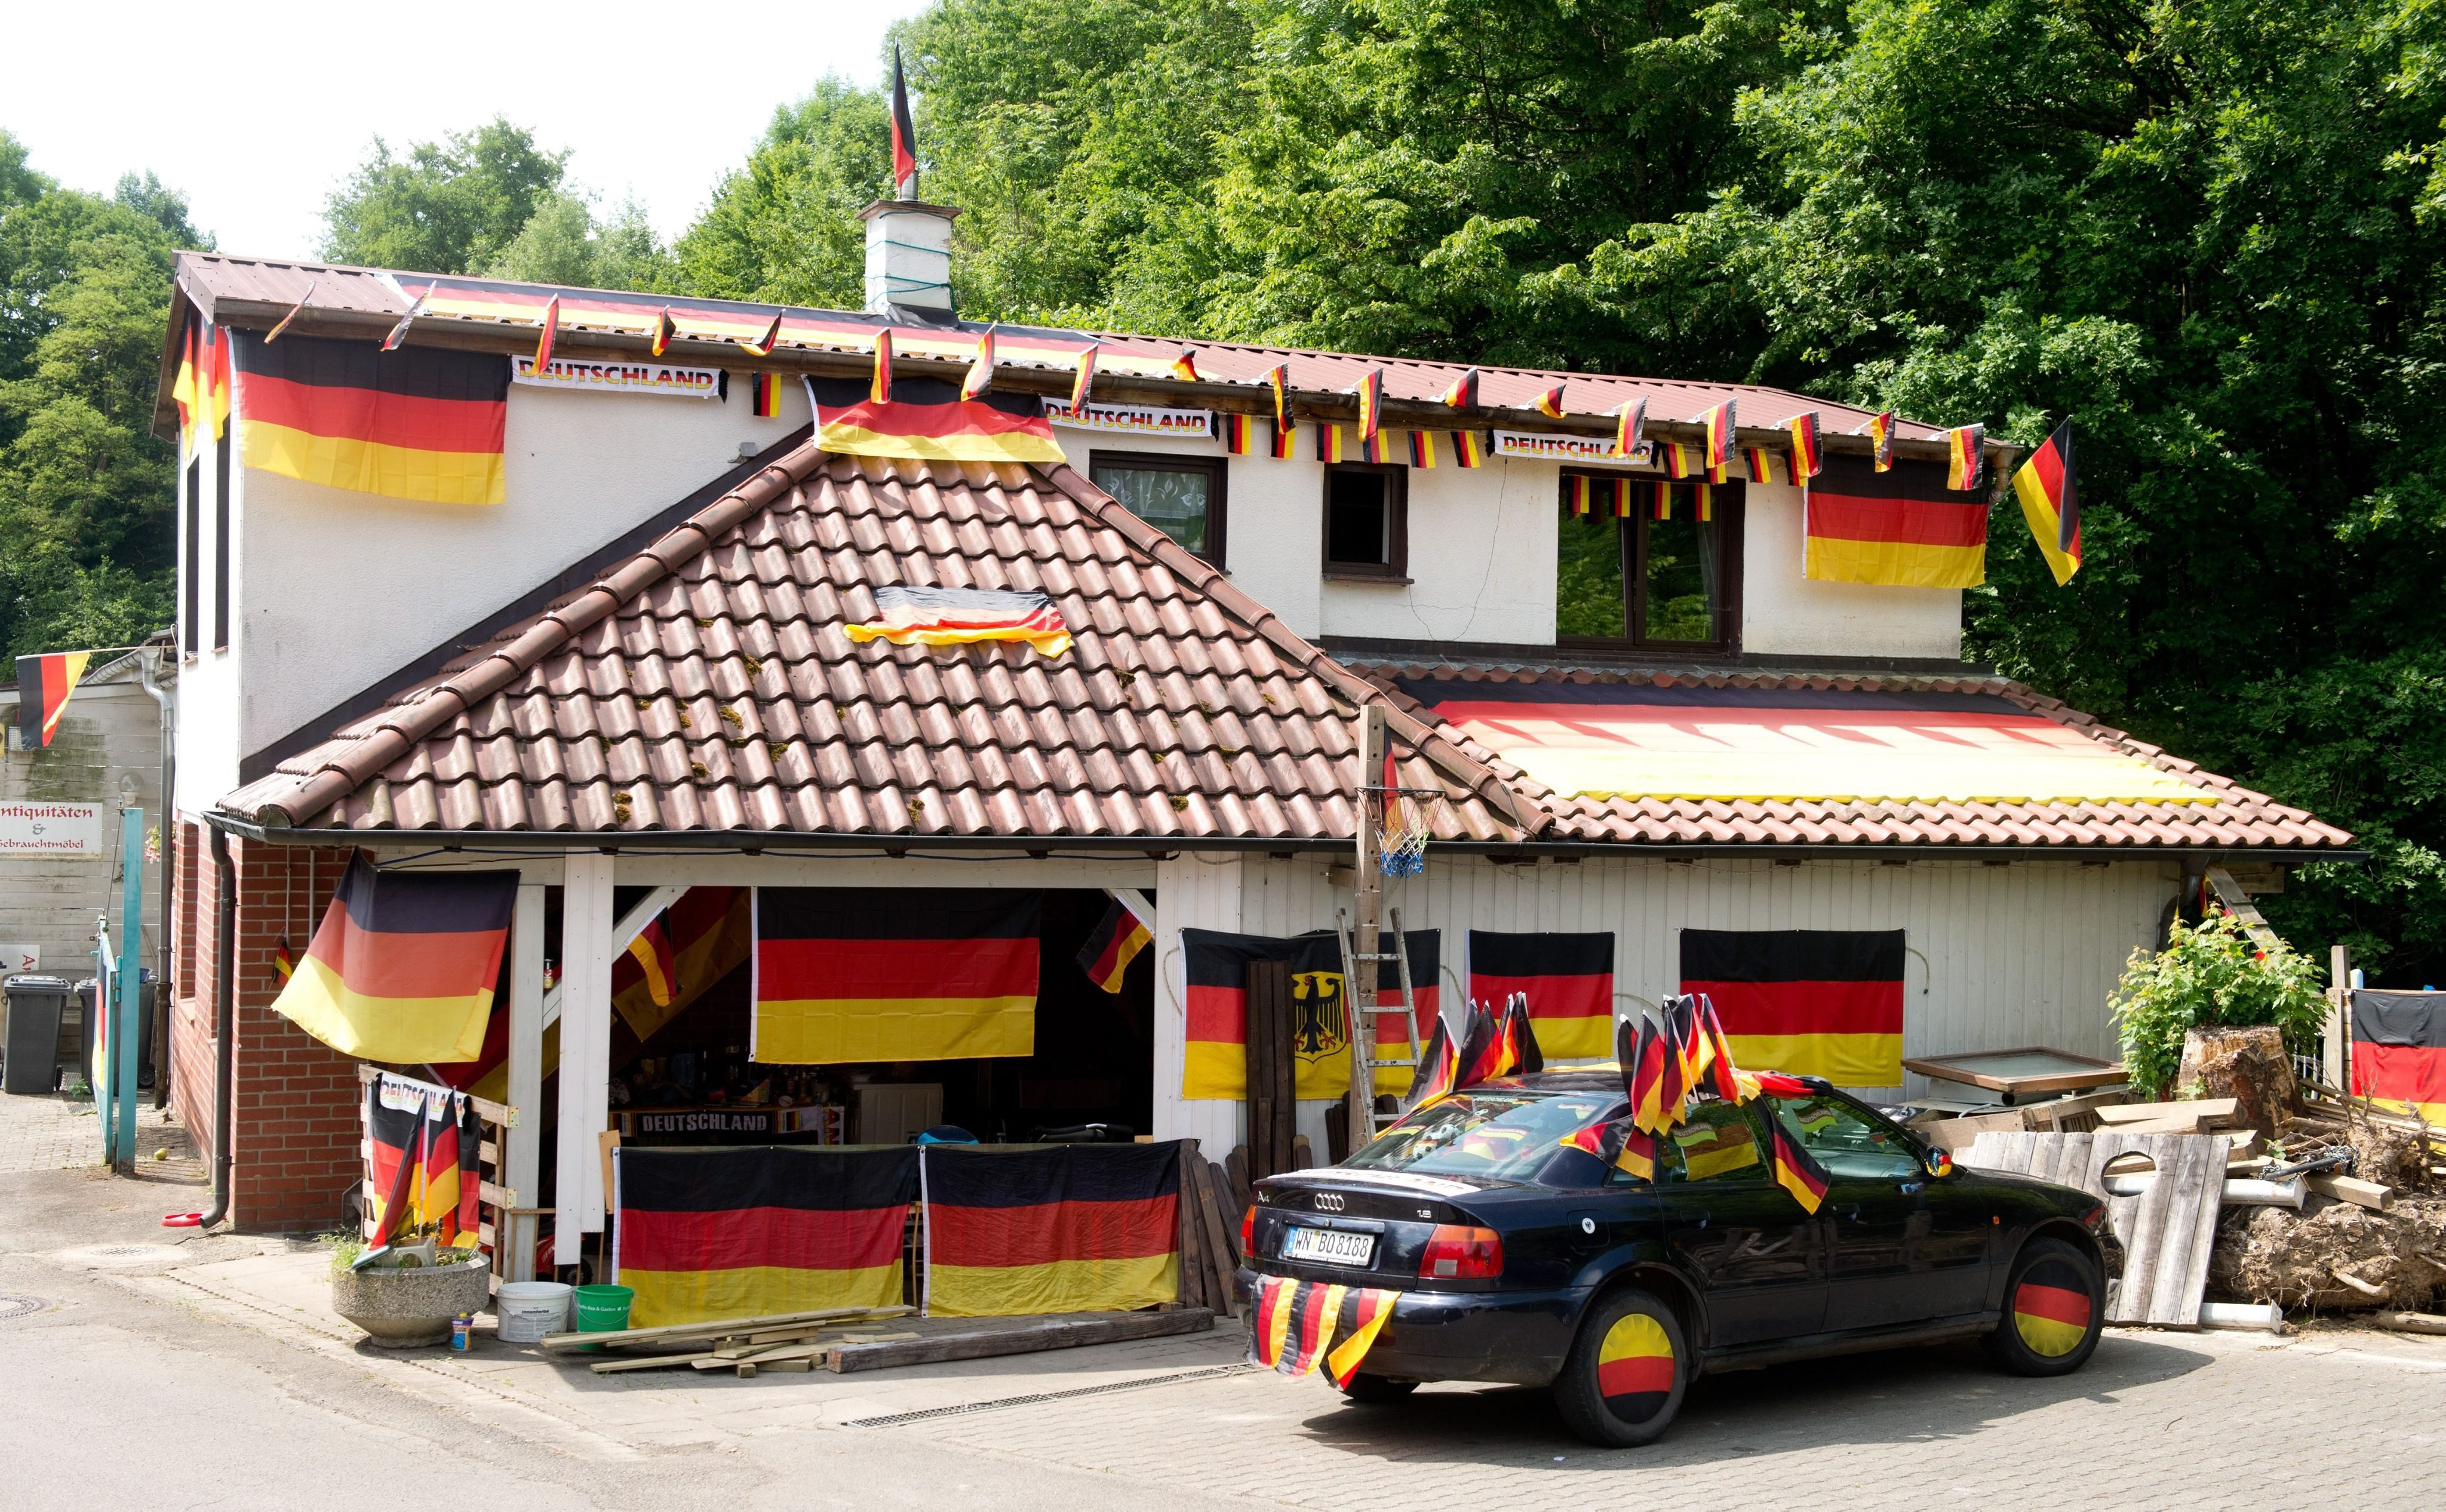 A house and a car in Maubach, Germany on June 12, 2014.